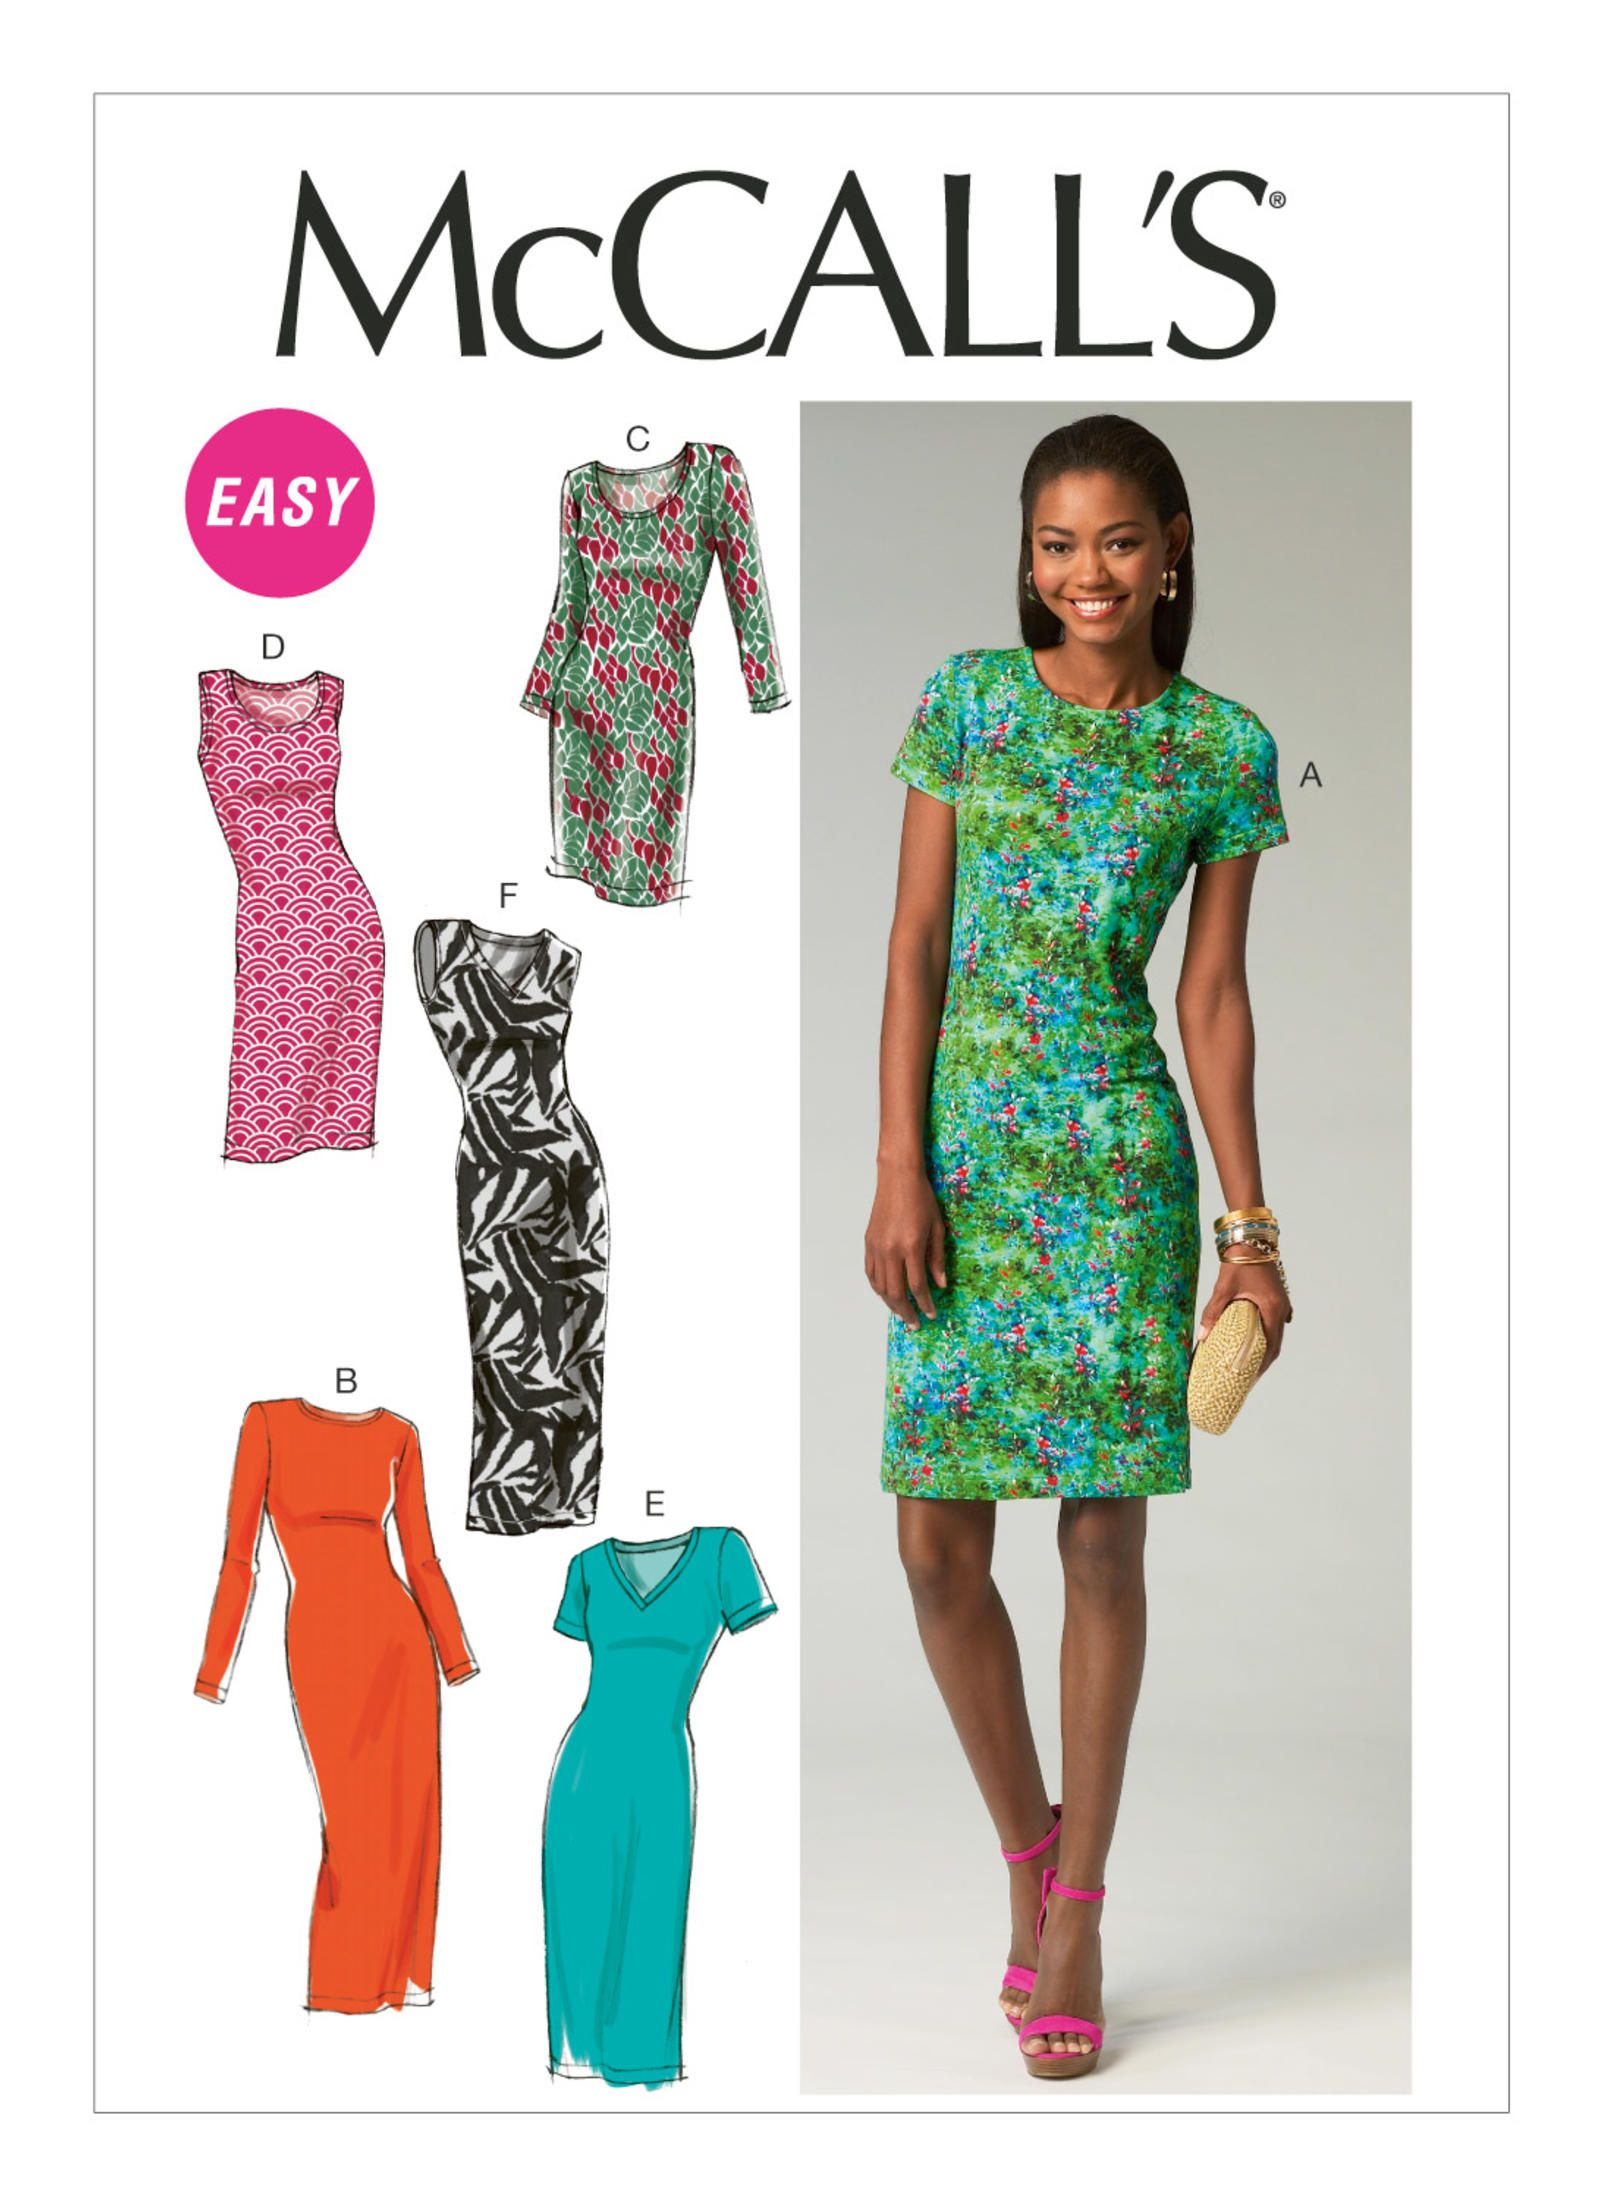 db91f24b9b8e M6886 | McCall's Patterns - Knit pullover dress in four lengths, with  sleeve & neckline variations